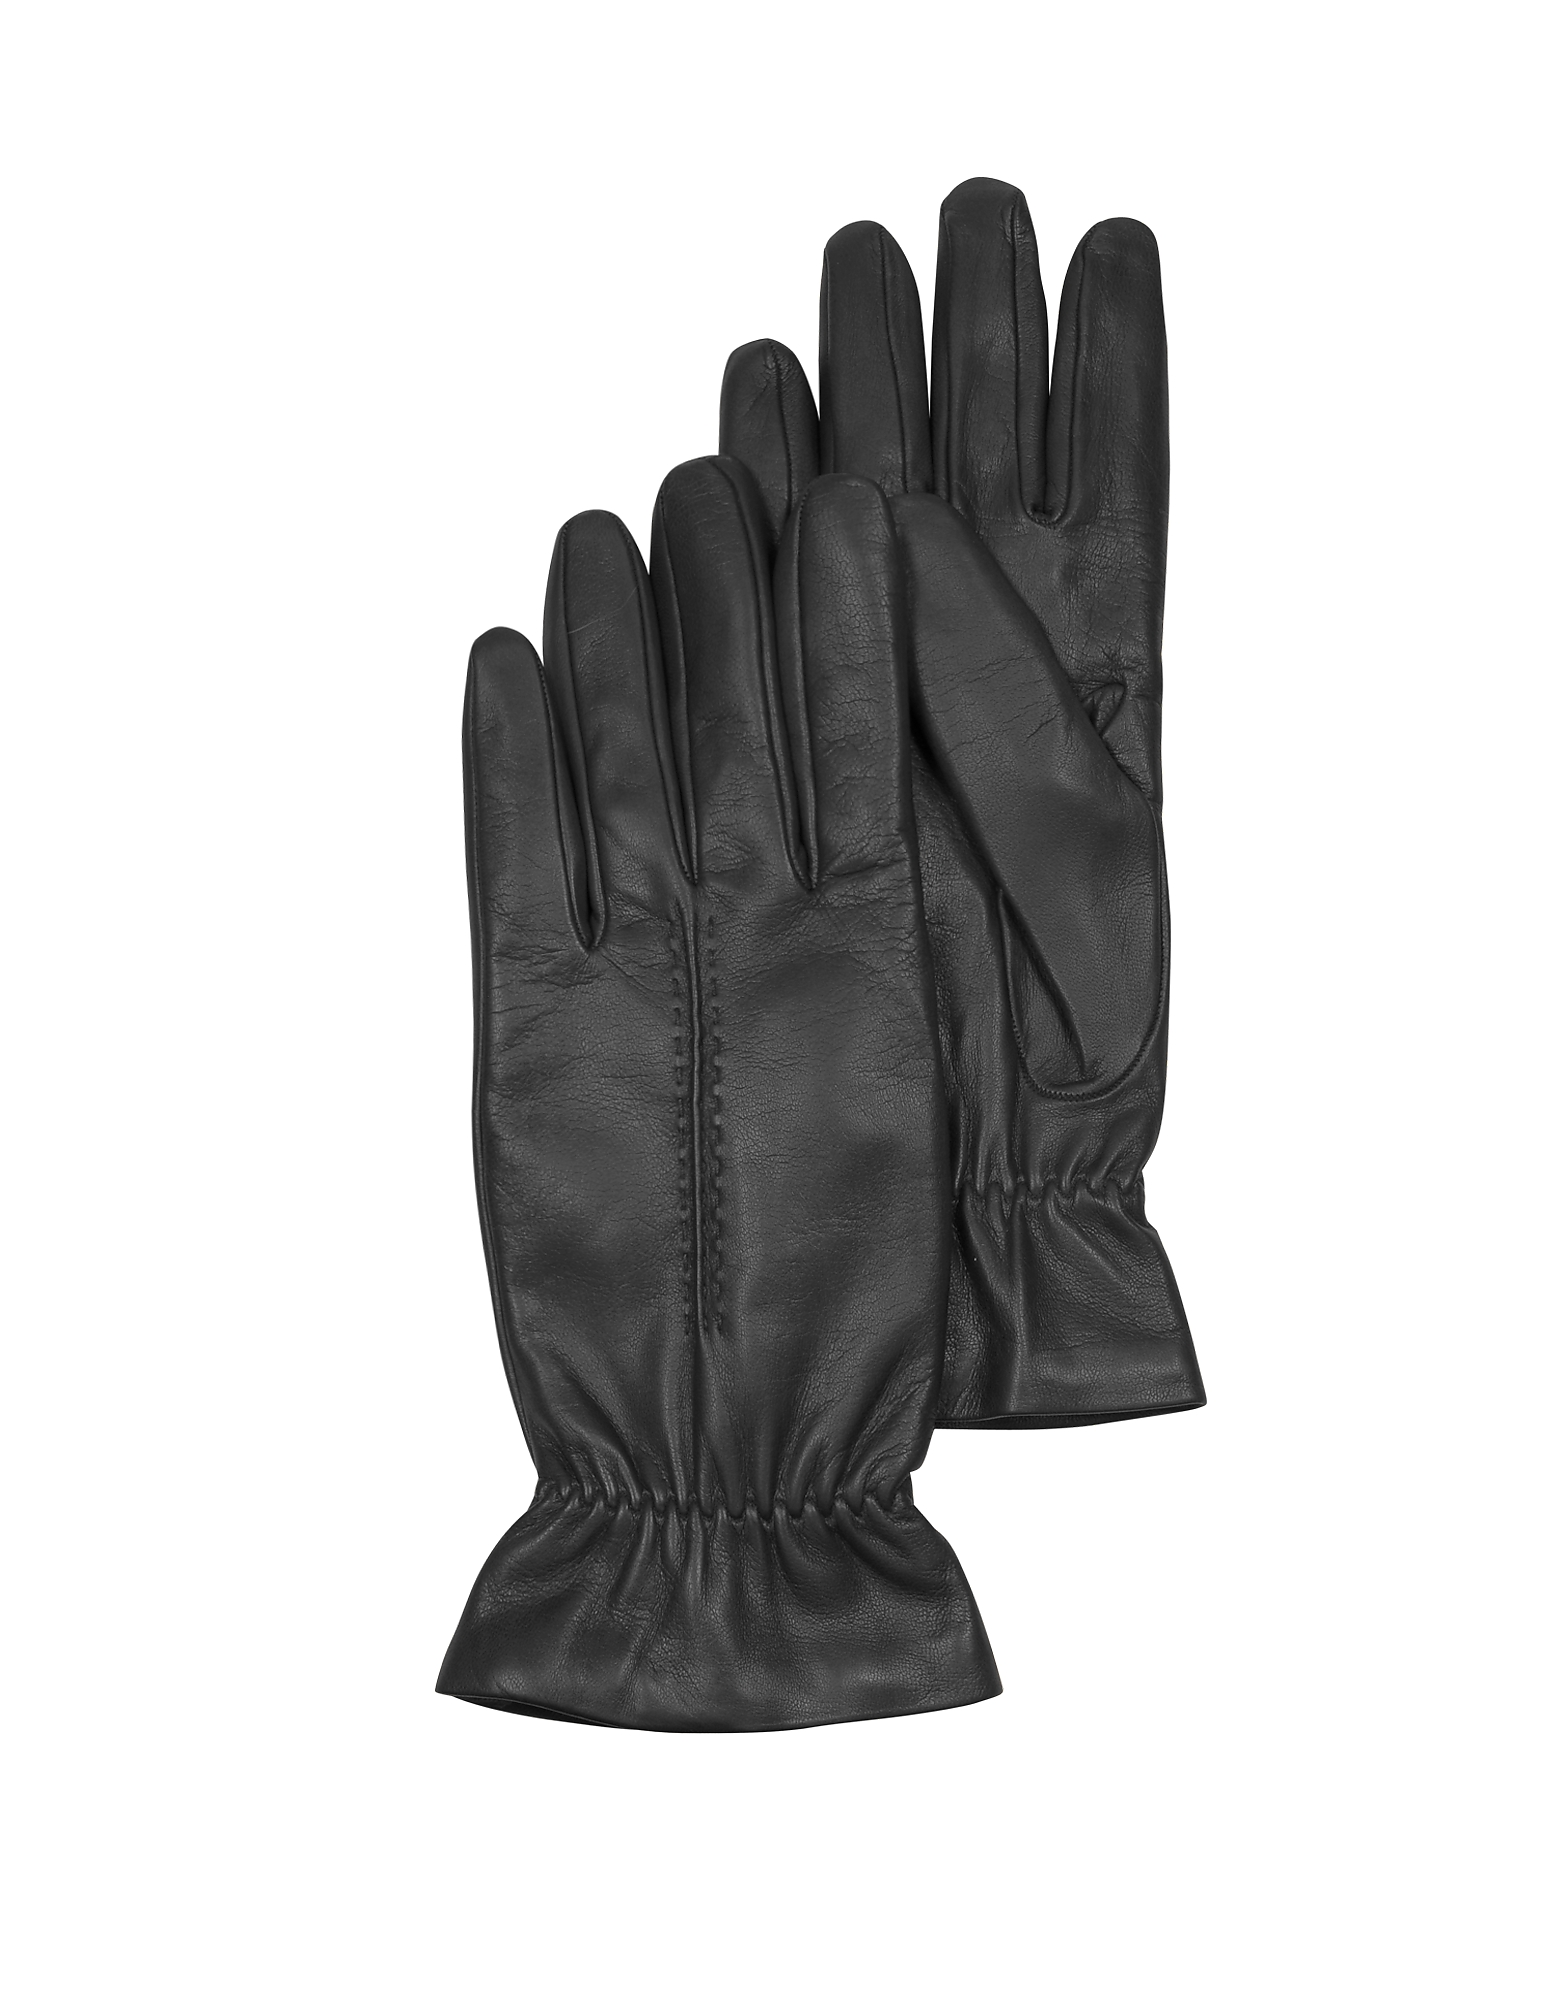 Forzieri Black Leather Women's Gloves w/Wool Lining